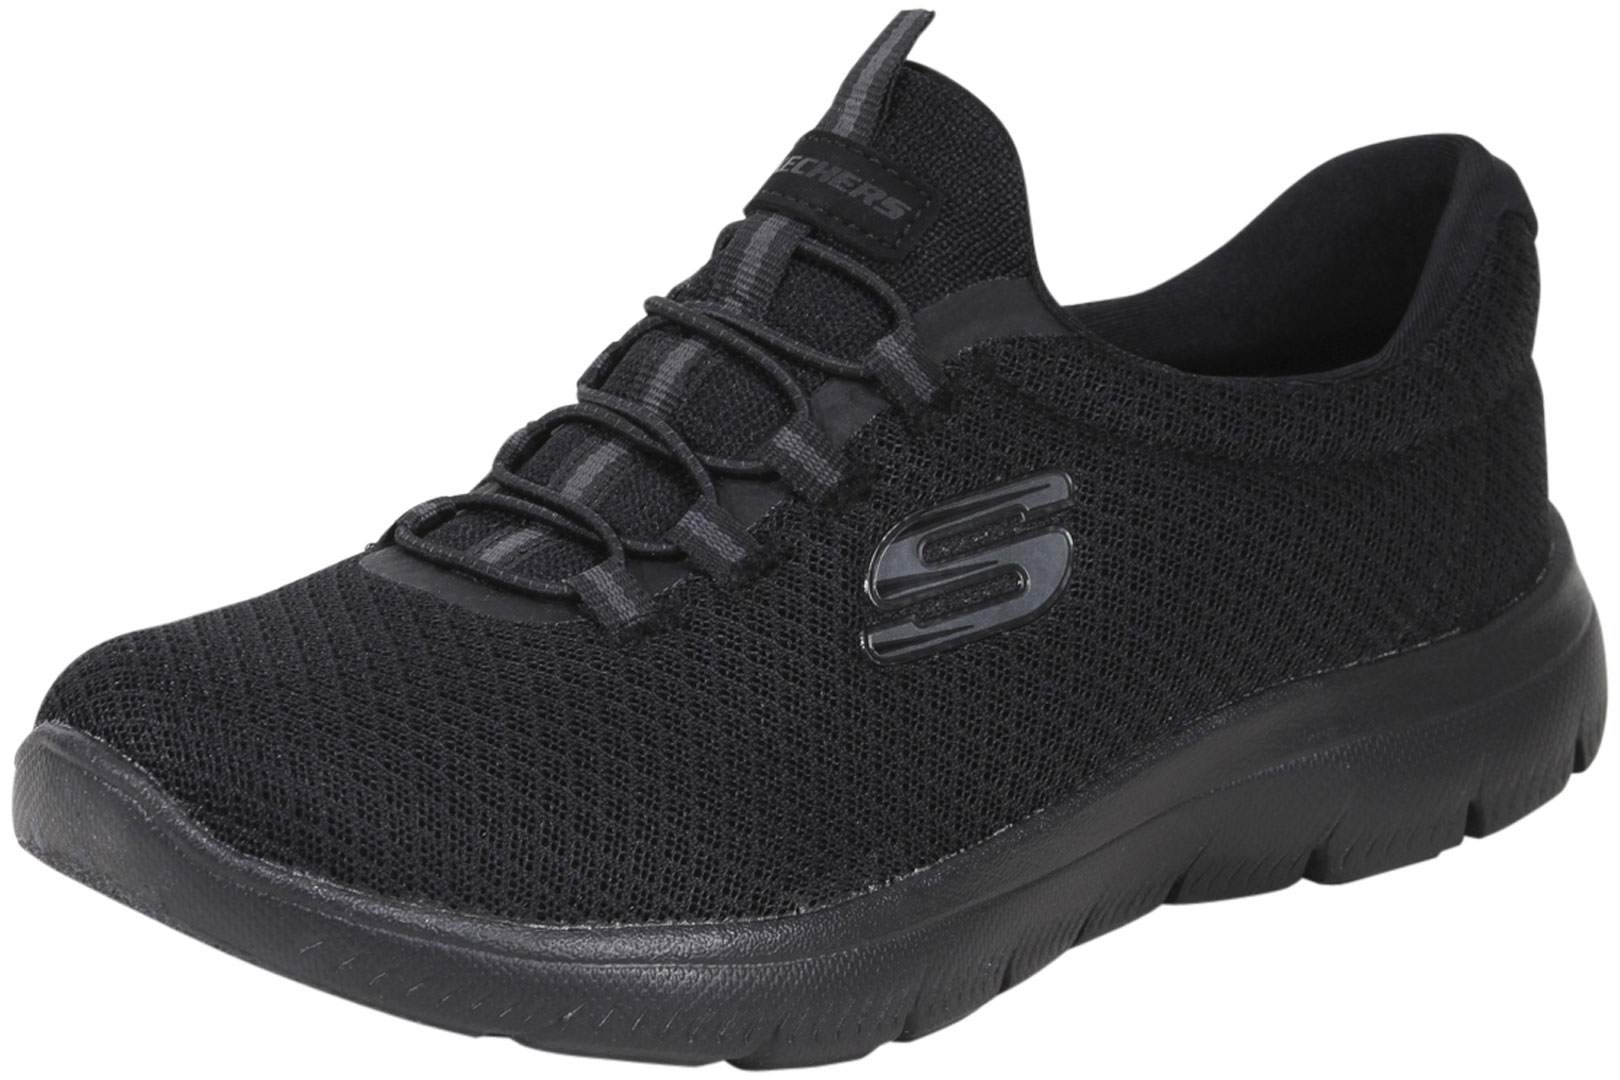 Summits Memory Foam Sneakers Shoes